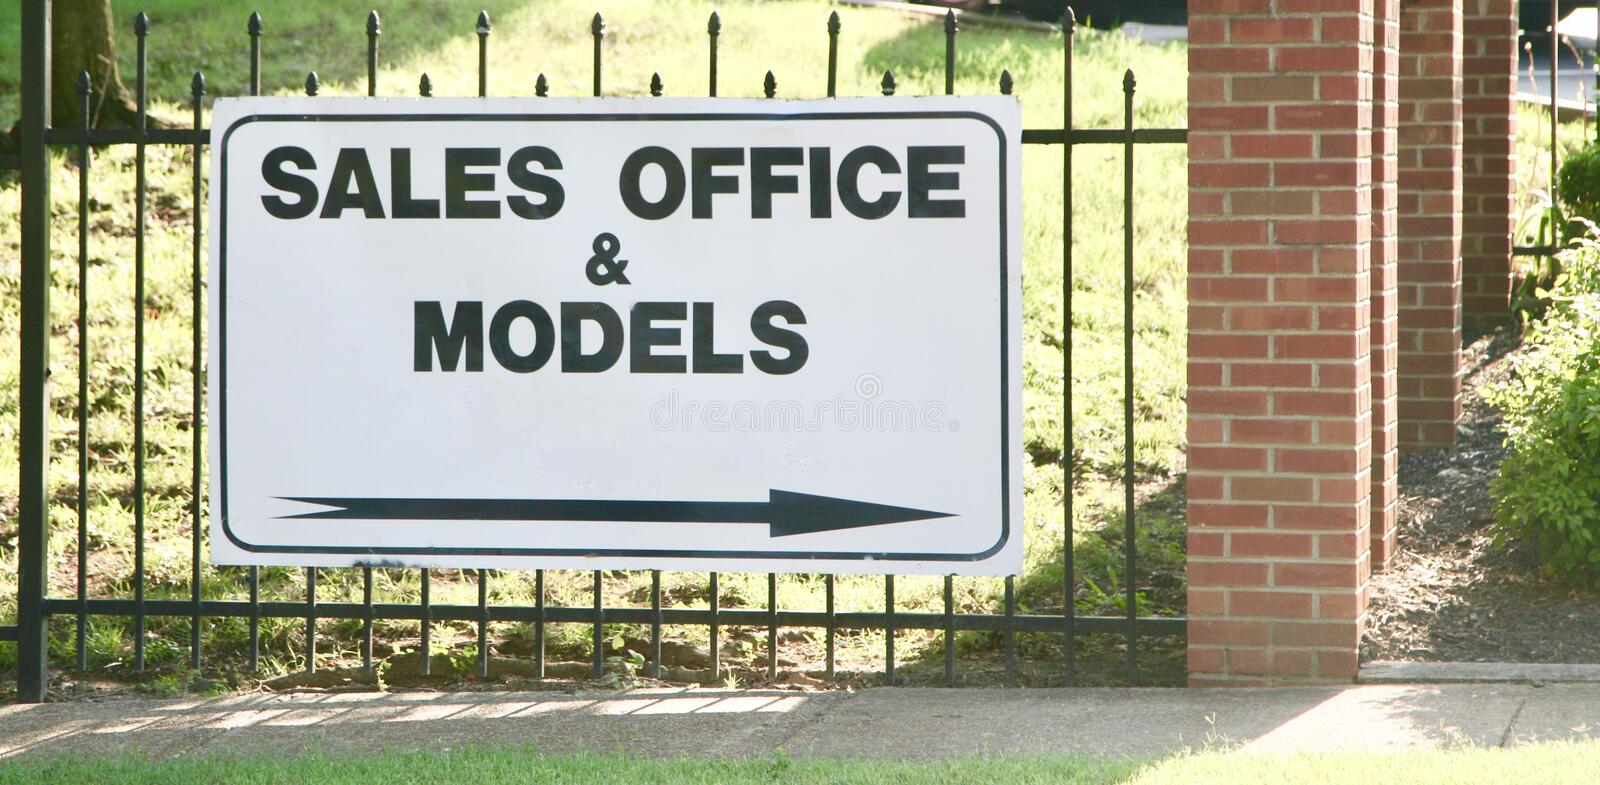 Sales Office and Models royalty free stock image